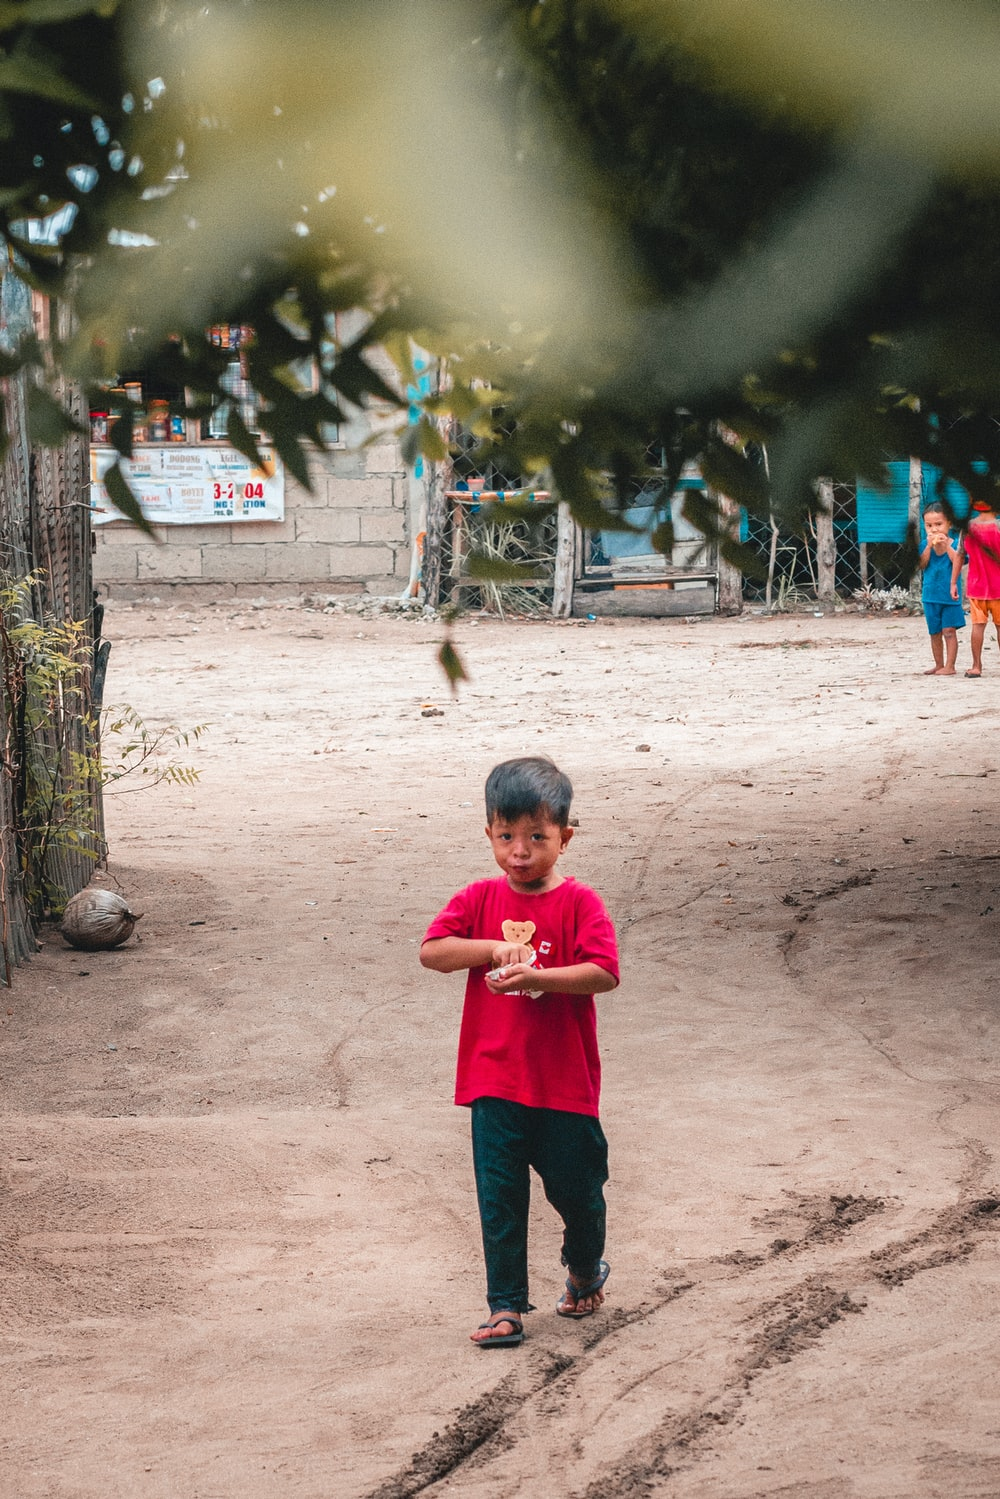 boy in pink shirt walking on dirt